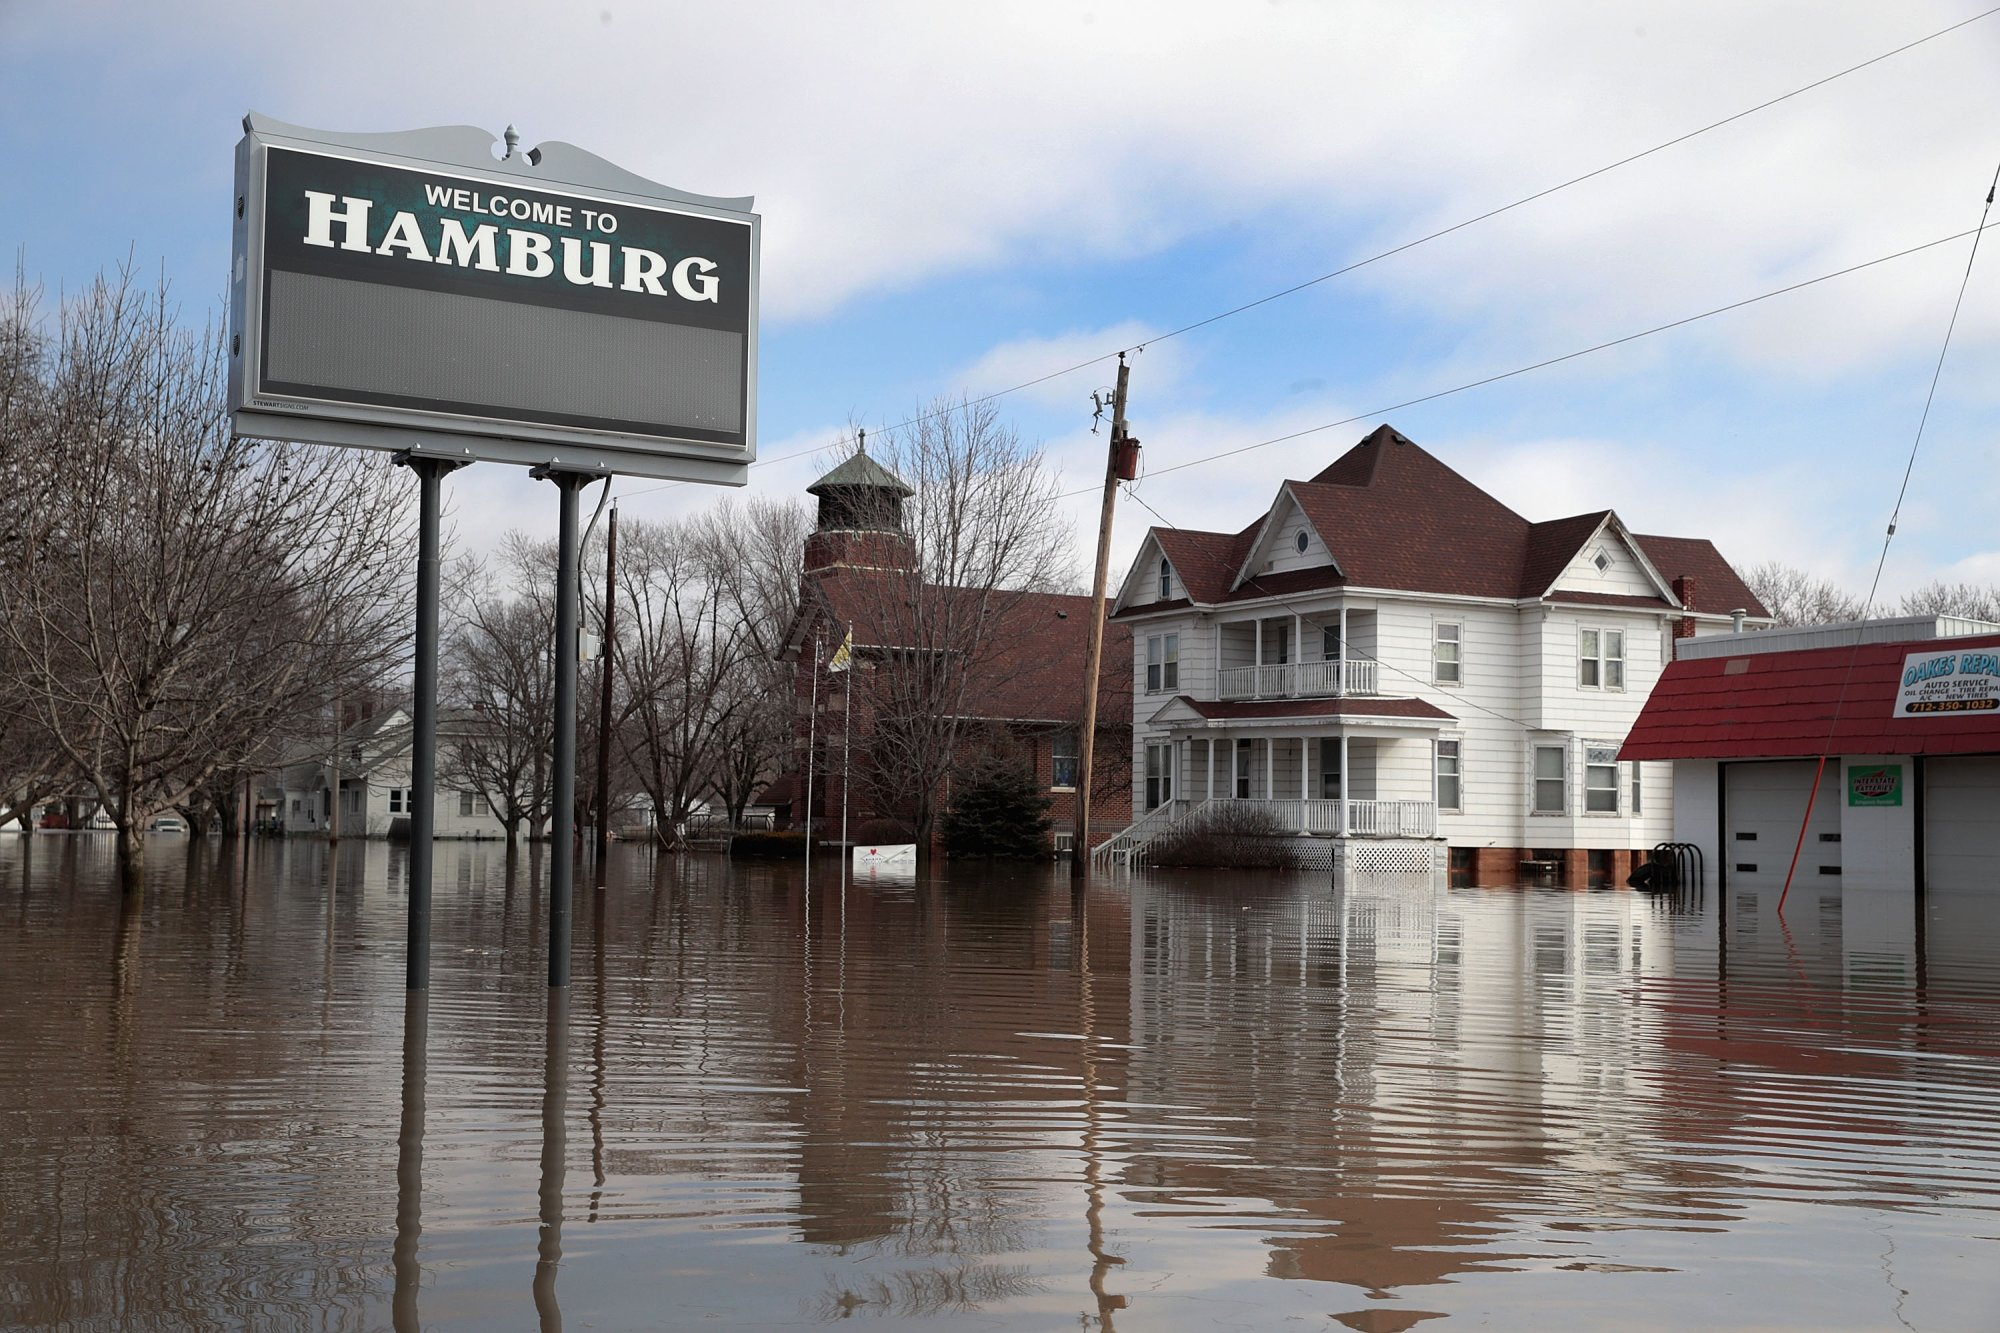 "HAMBURG, IOWA - MARCH 20:  A home sits in flood water on March 20, 2019 in Hamburg, Iowa. Although flood water in the town has started to recede many homes and businesses remain surrounded by water. Several Midwest states are battling some of the worst flooding they have experienced in decades as rain and snow melt from the recent ""bomb cyclone"" has inundated rivers and streams. At least three deaths have been linked to the flooding.  (Photo by Scott Olson/Getty Images)"